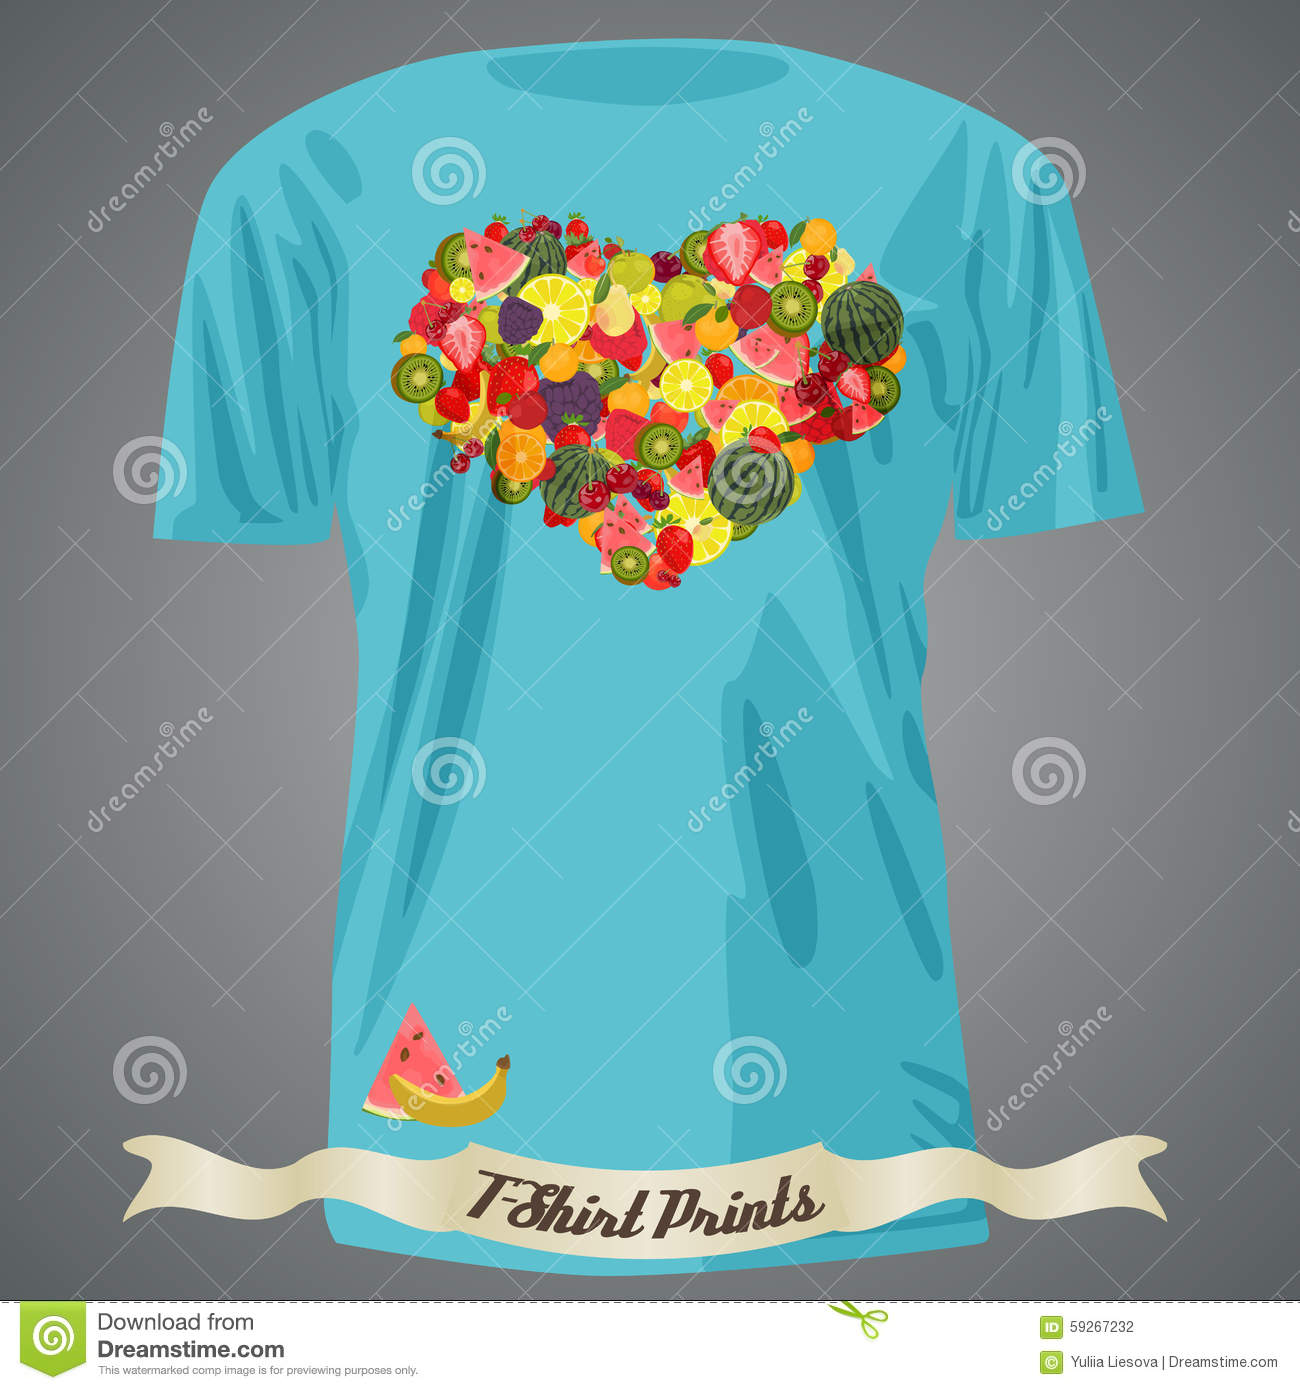 Heart design t shirt - Design Fruits Heart Illustration Made Shirt